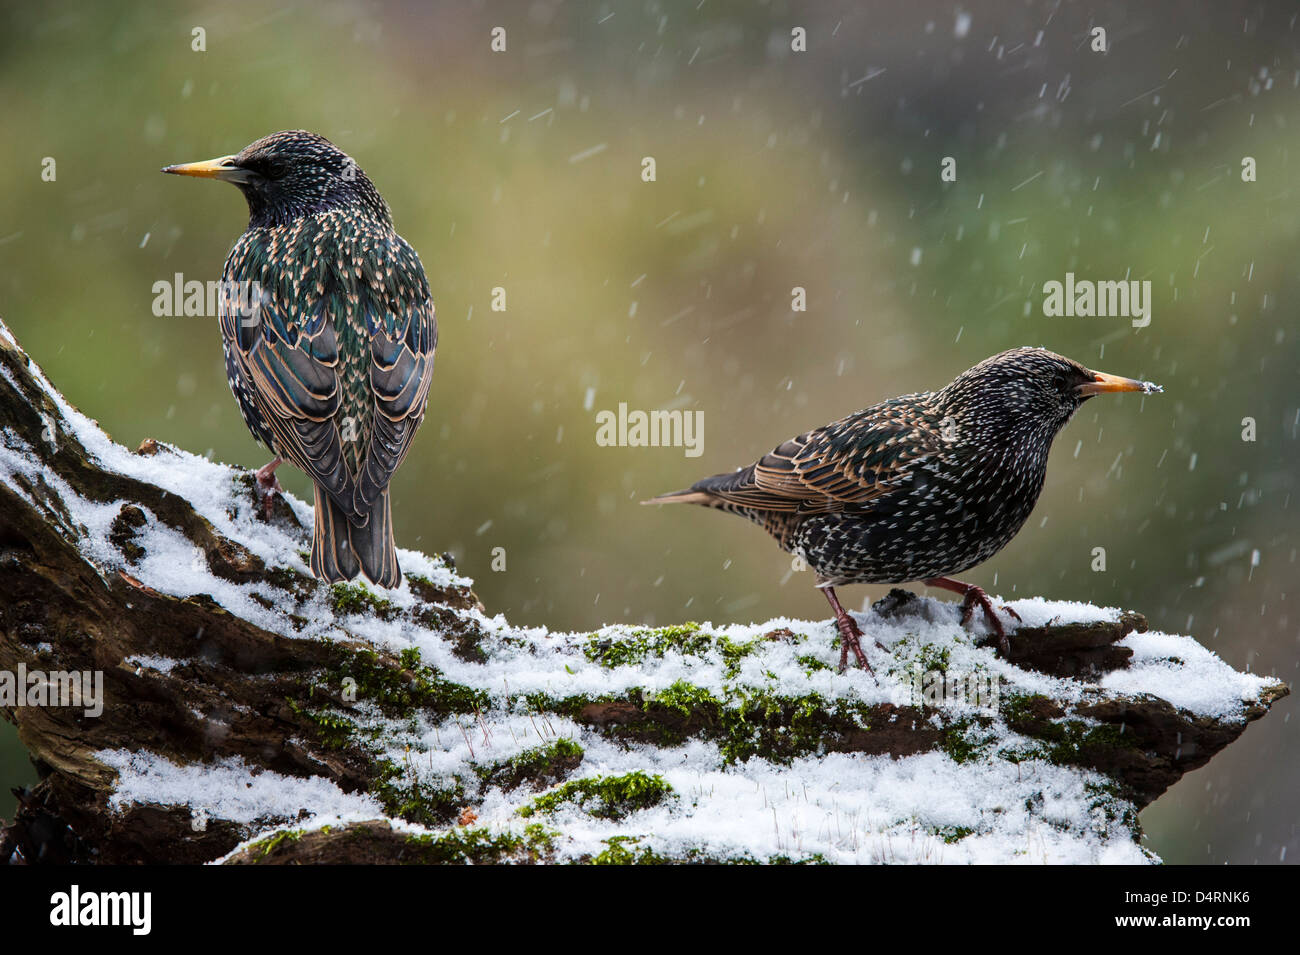 Two Common Starlings / European starling (Sturnus vulgaris) perched on tree stump in the snow in winter - Stock Image